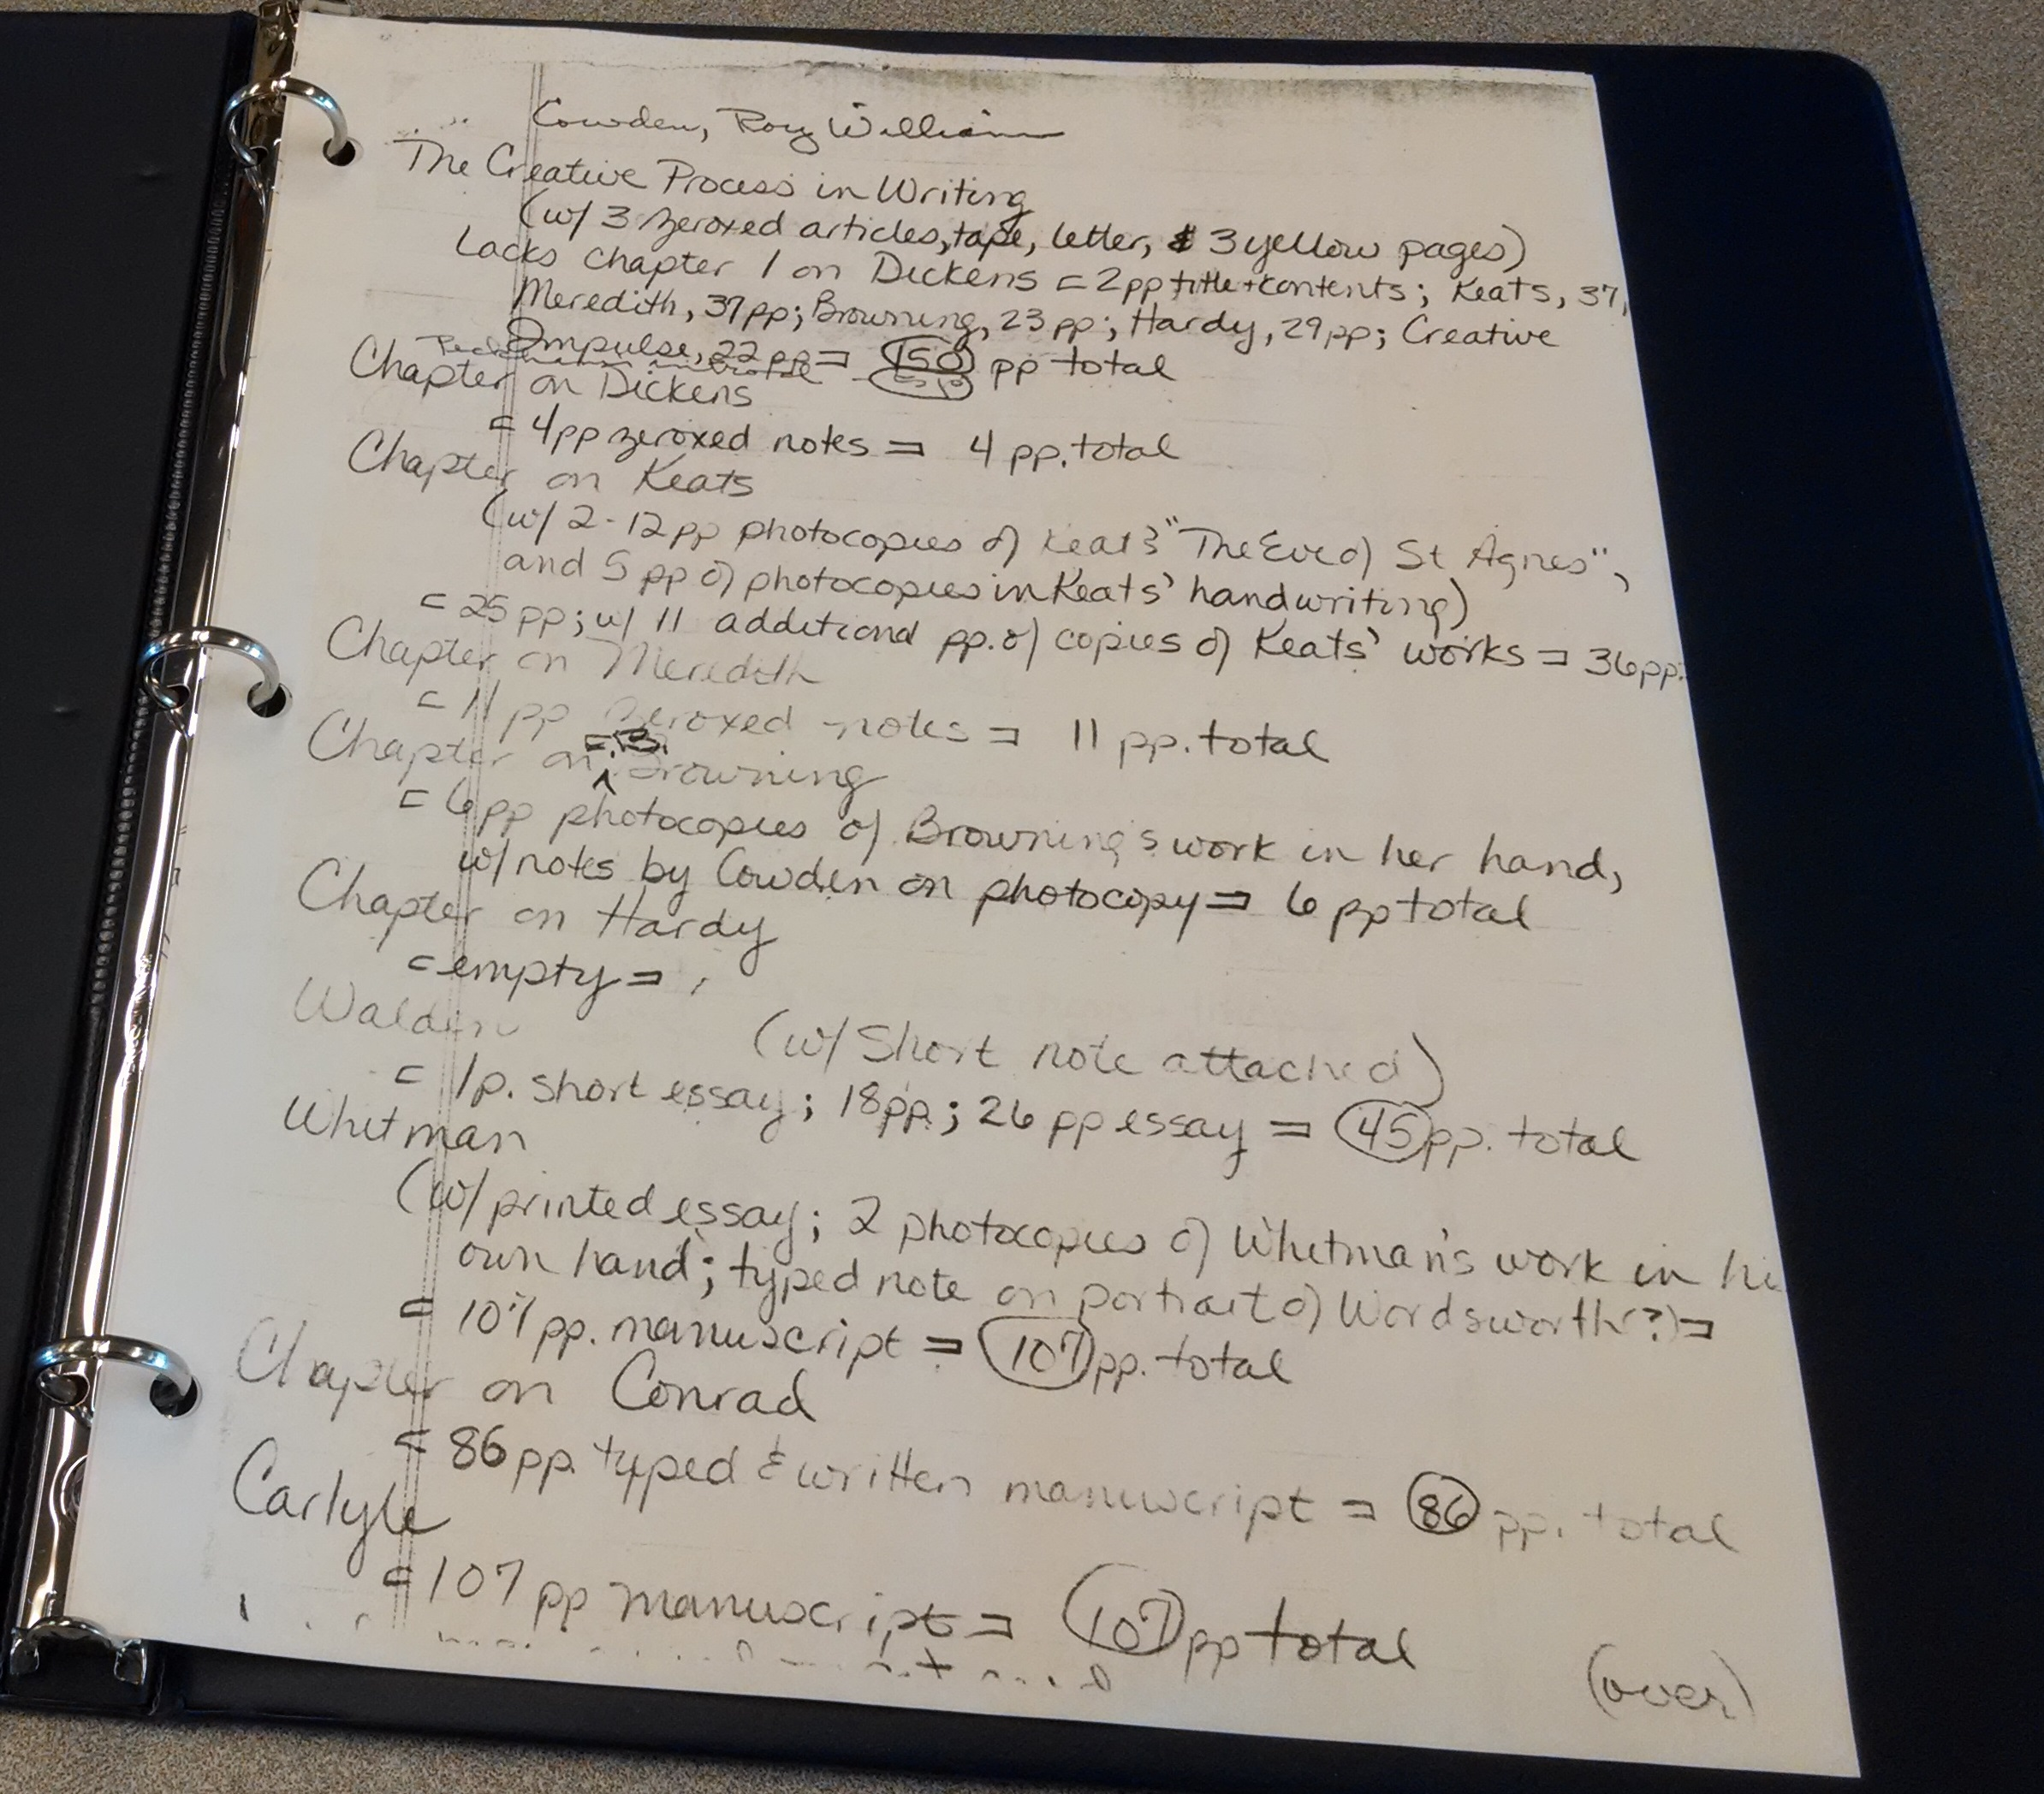 Handwritten contents of unpublished manuscript, The Creative Process of Writing, by Row W. Cowden